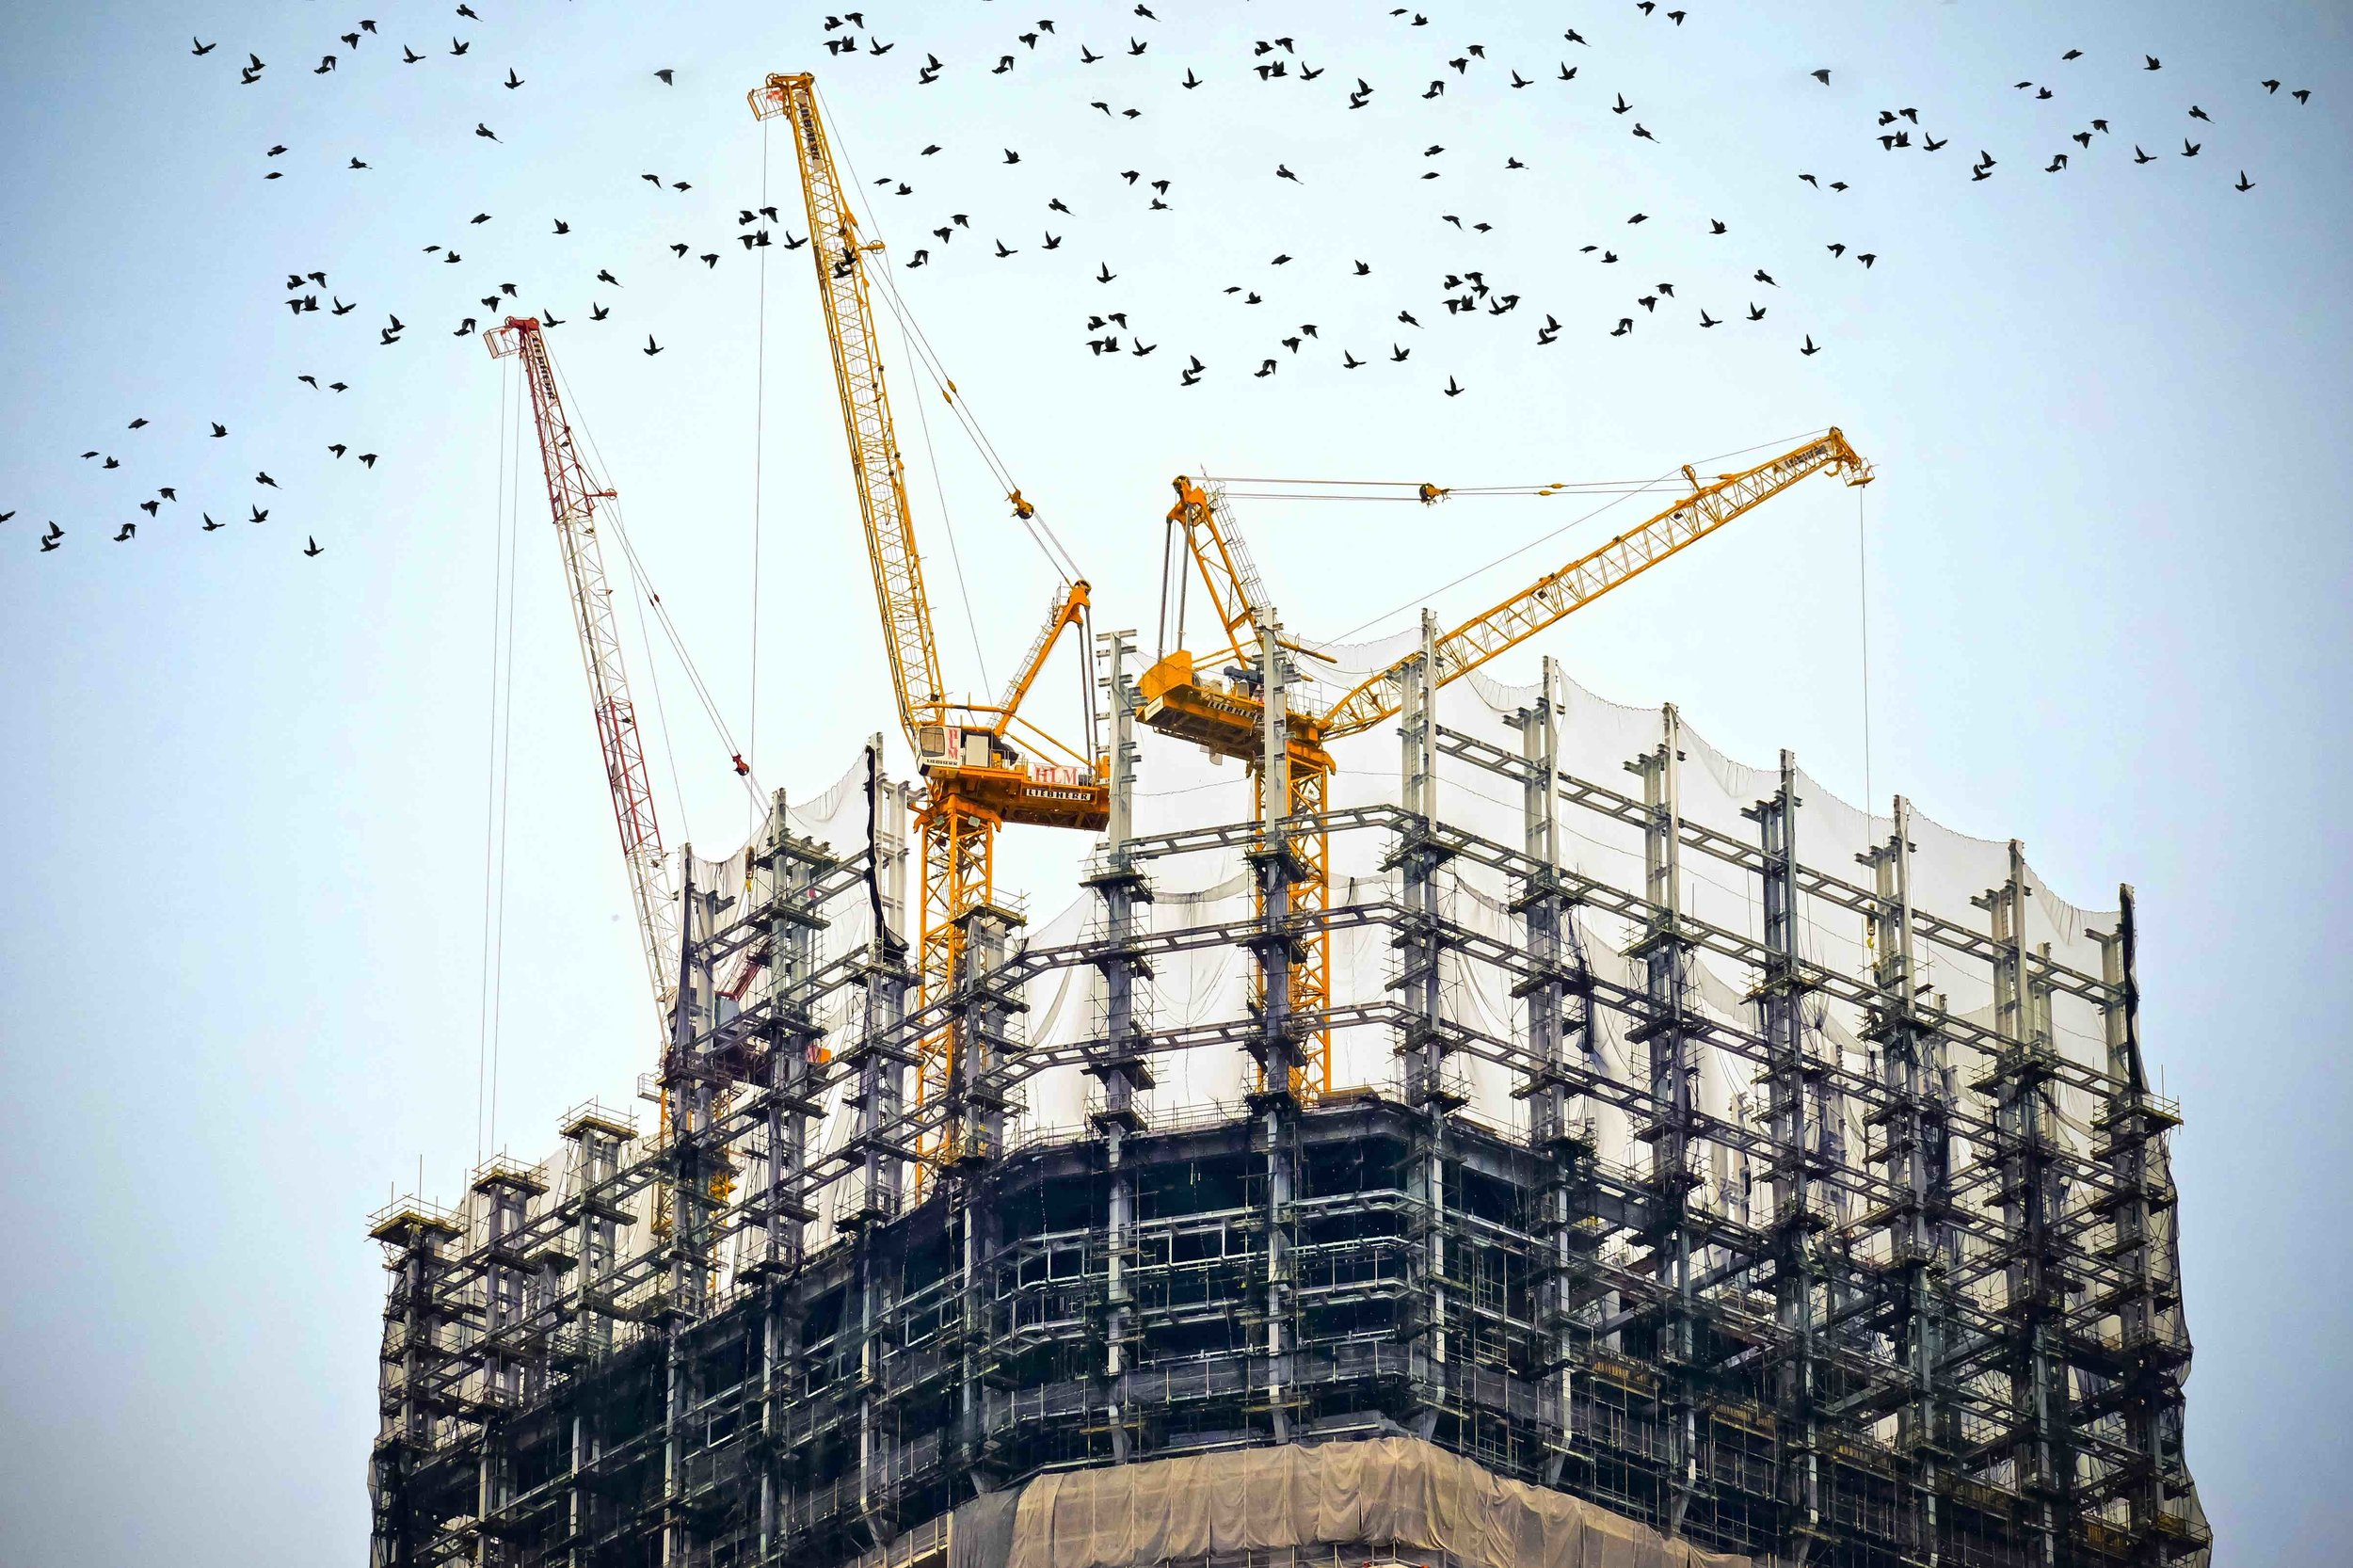 commercial-construction-loans-commercial-real-estate.jpg